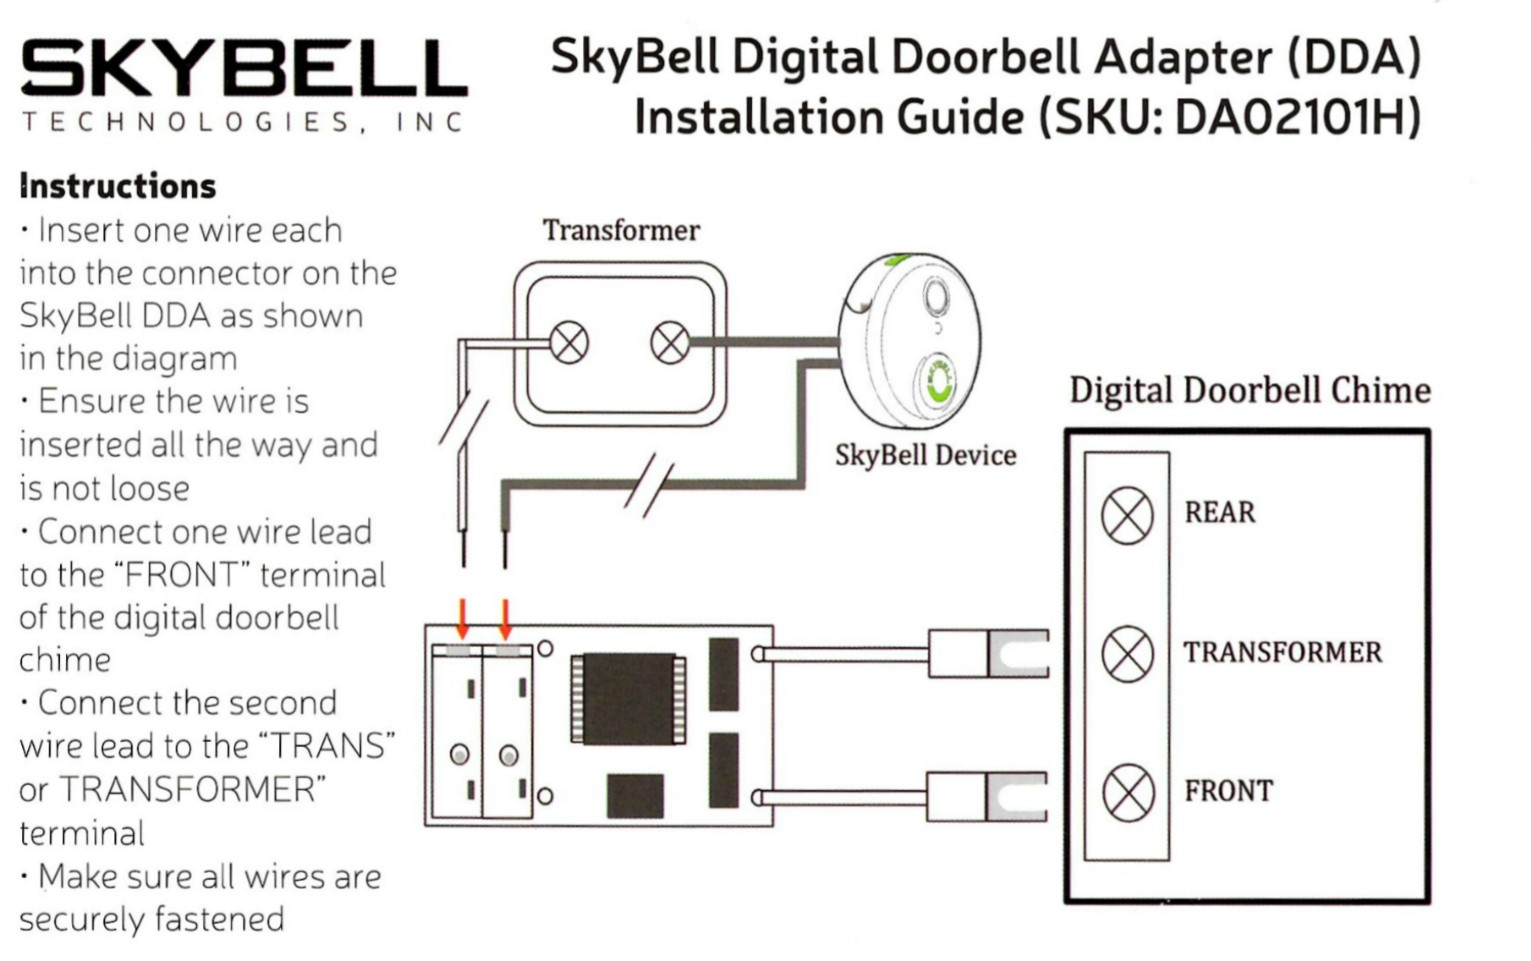 do i need a digital doorbell adapter how do i install it skybell rh skybelltechnologies zendesk com doorbell wiring diagram single button doorbell wiring diagram uk